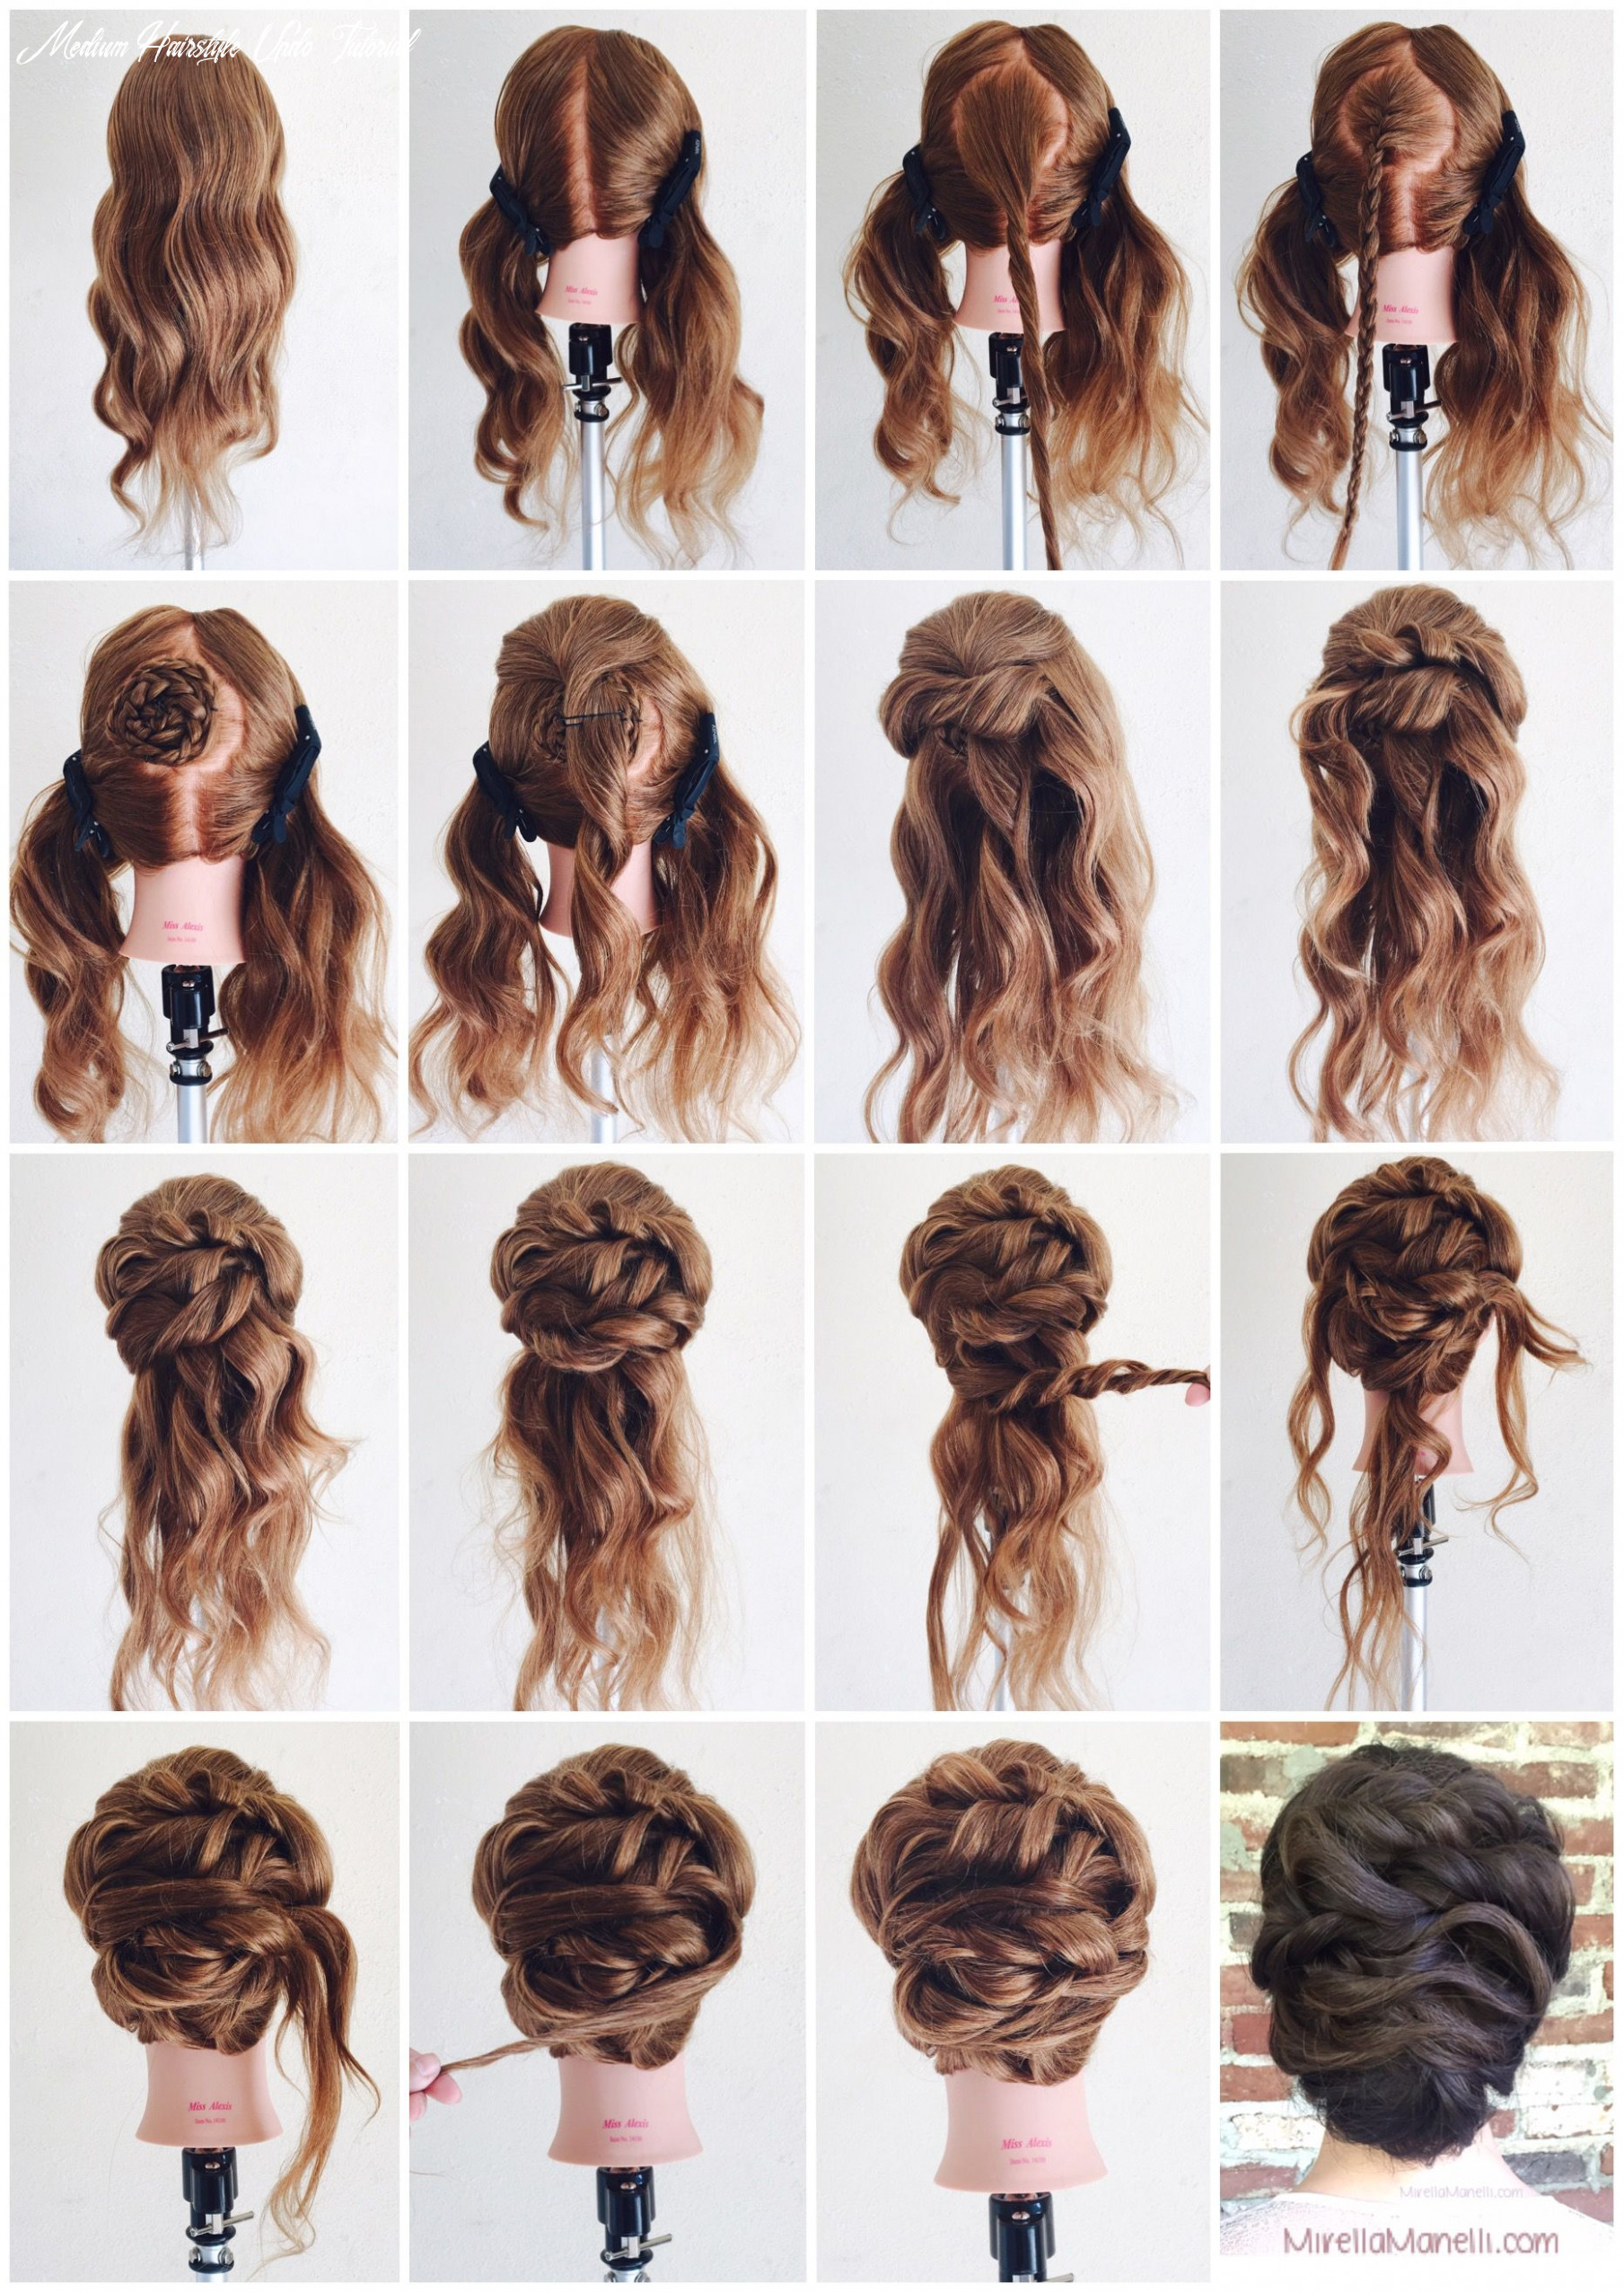 Updo tutorial of vanderpump rules star, katie maloney (with images